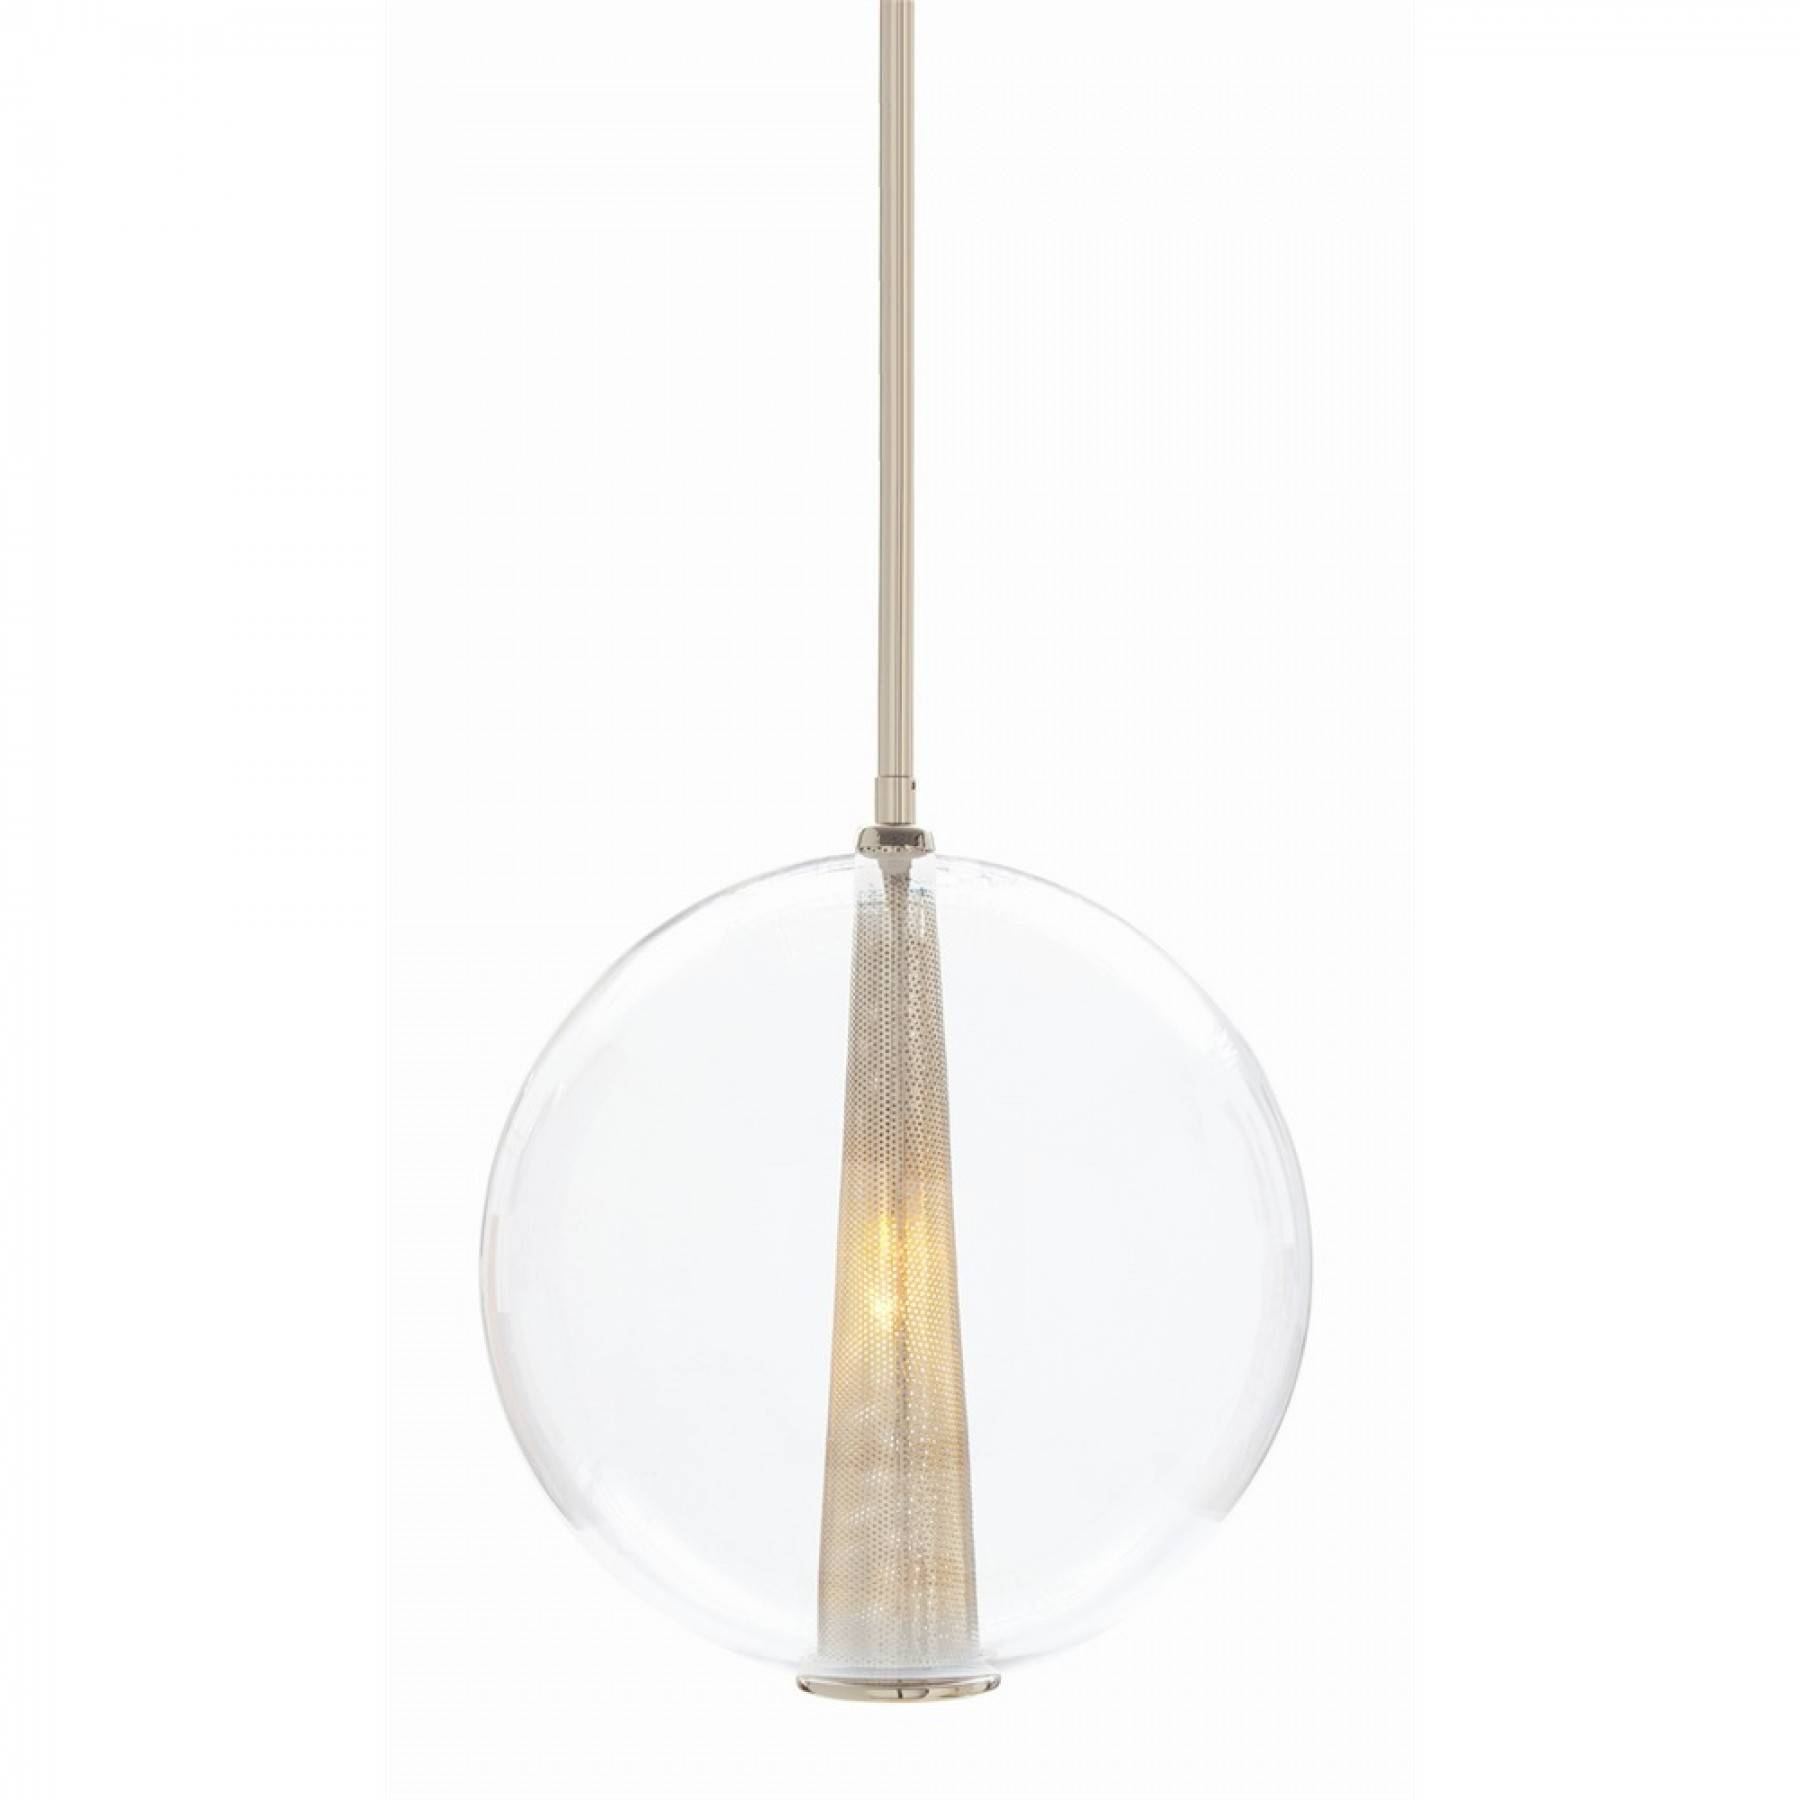 Adjustable Large Pendant with regard to Caviar Lights Fixtures (Image 3 of 15)